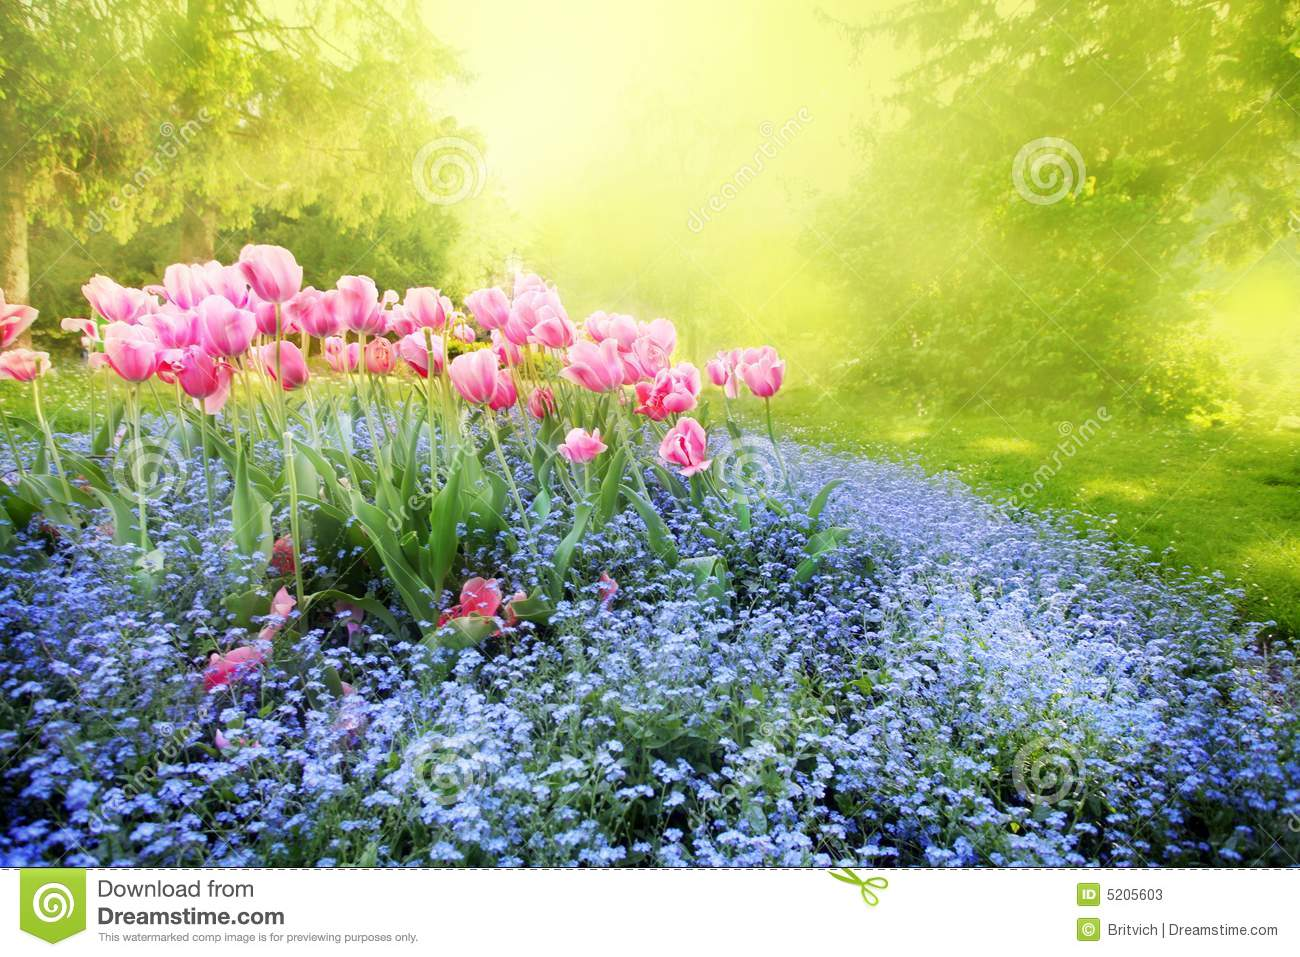 Spring sunny mysterious garden with tender flower-bed.